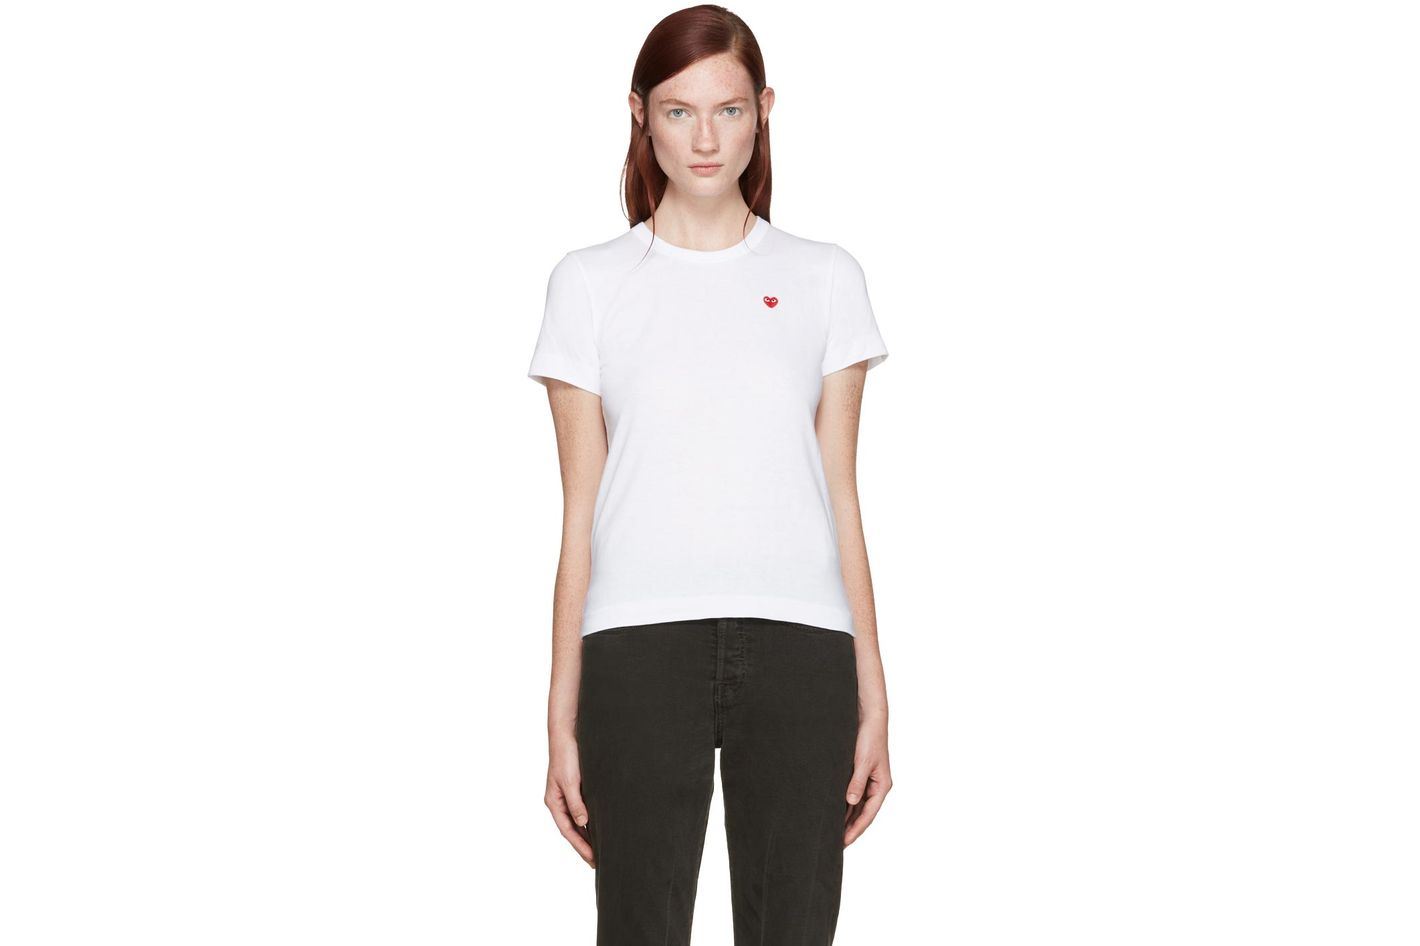 What's the Best White T-shirt for Women?